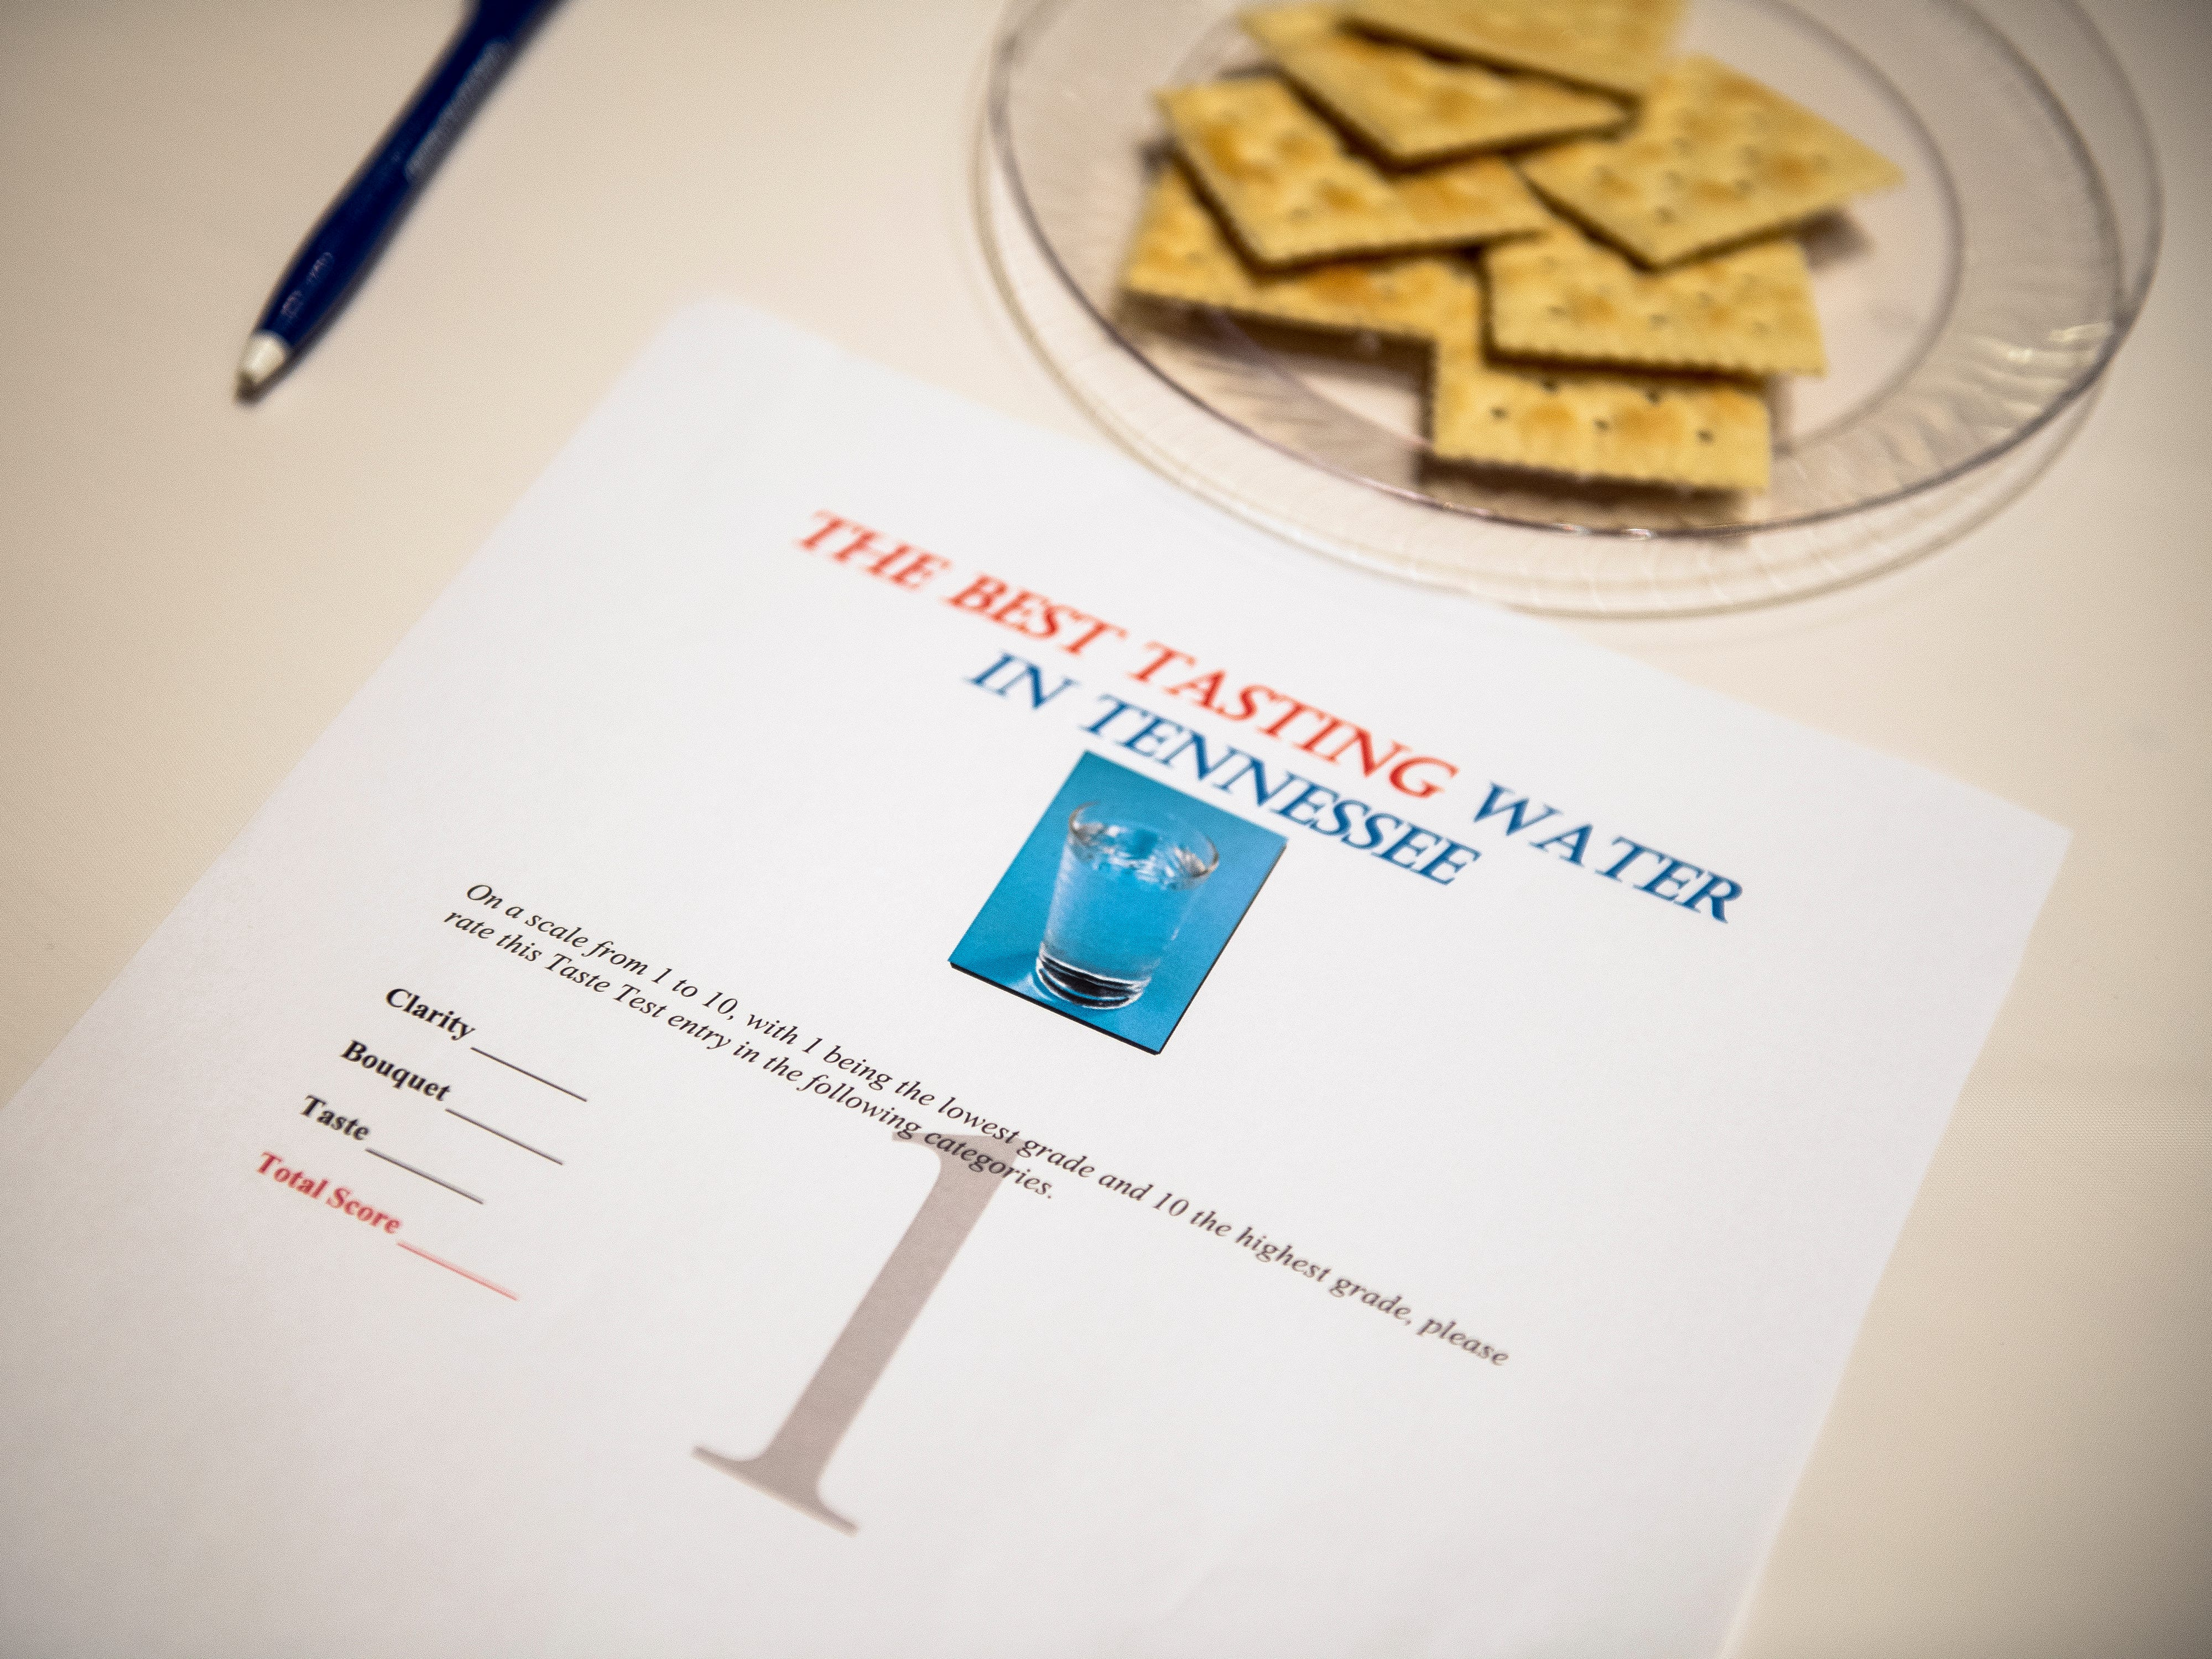 Saltine crackers and a scoring sheet wait on a table for Tennessee's Best Tasting Water Contest on Thursday, Aug. 9, 2018, at the Gatlinburg Convention Center.